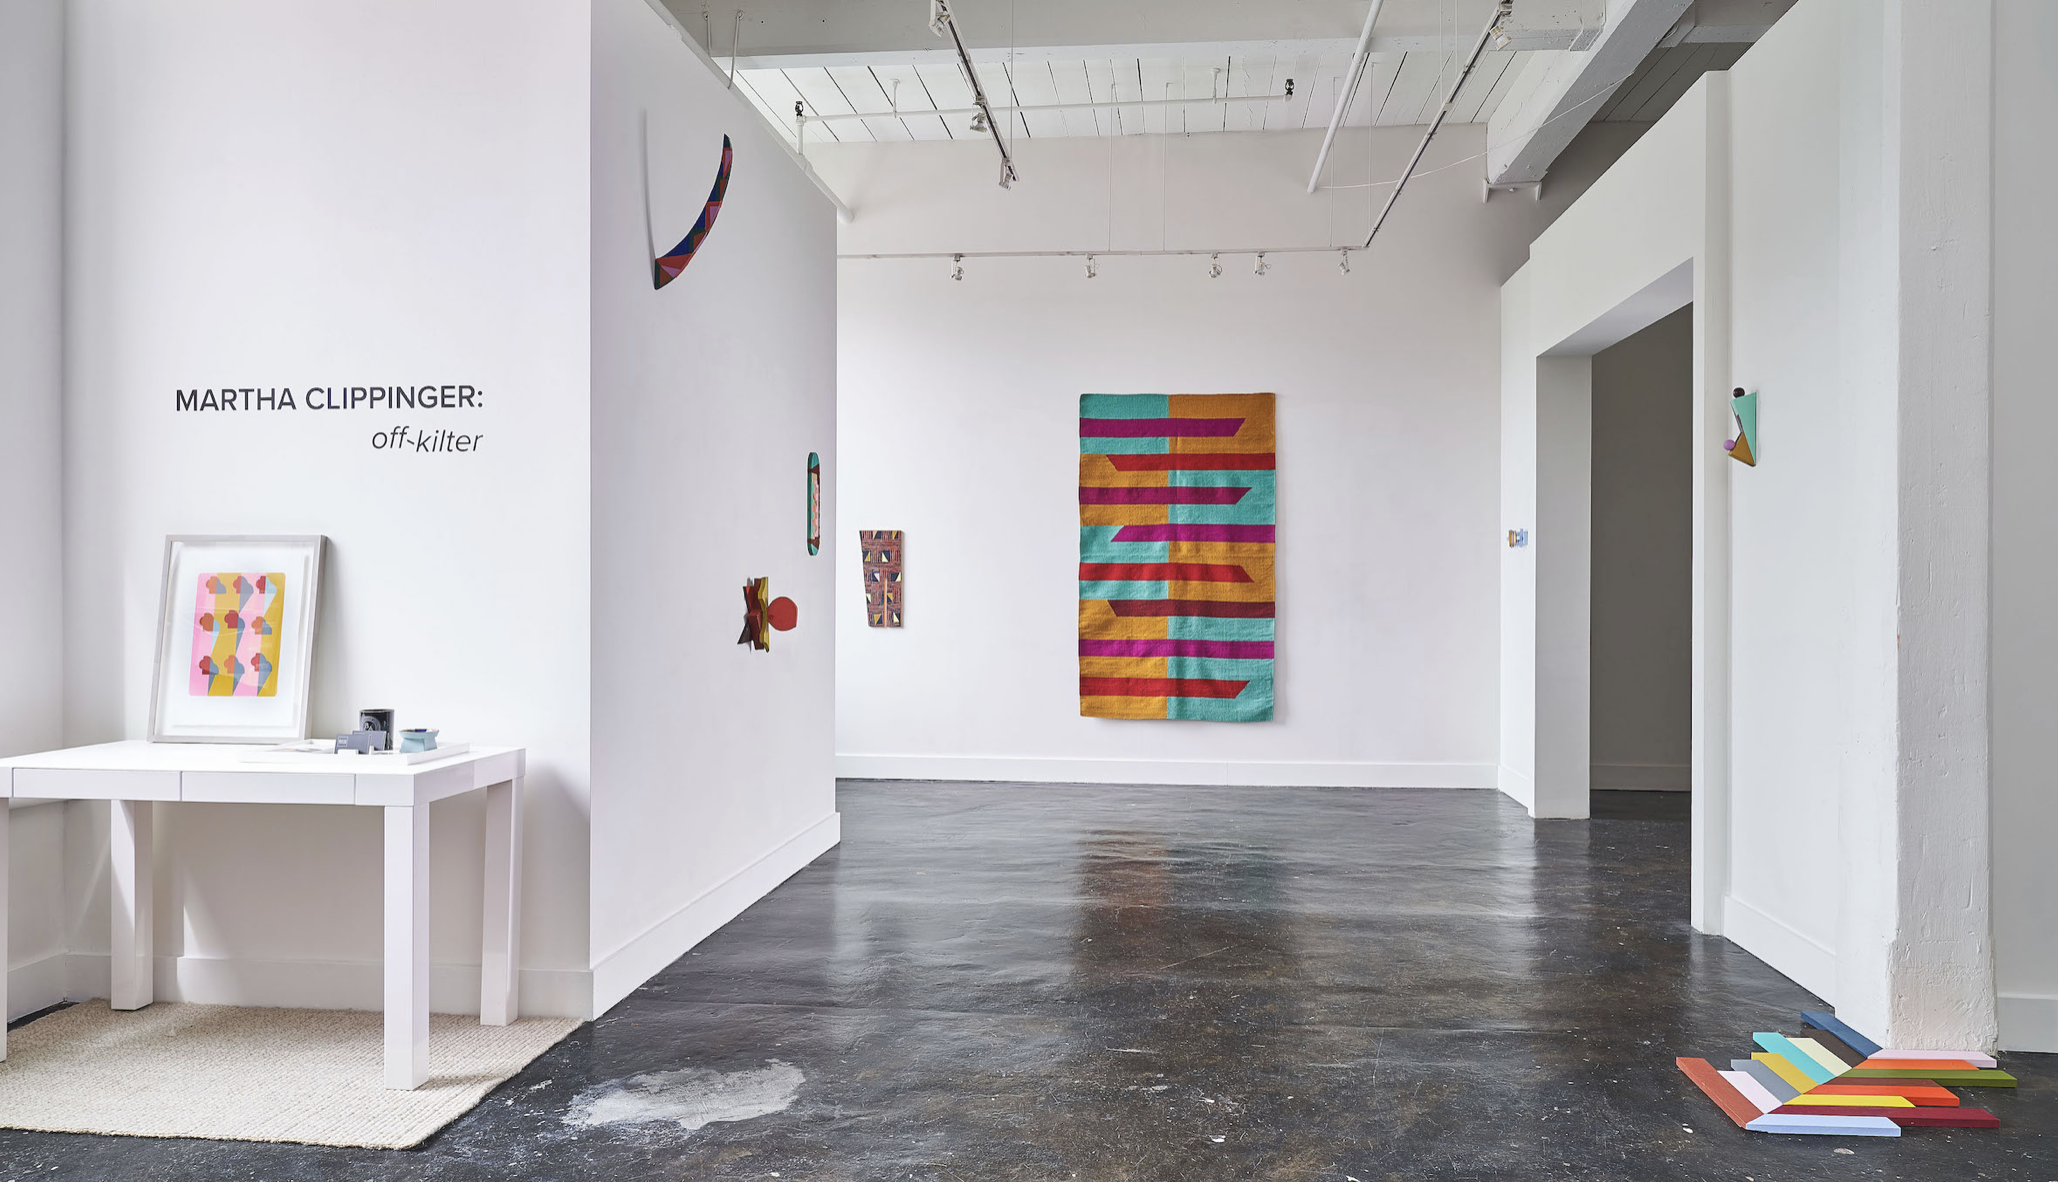 MARTHA CLIPPINGER: off-kilter  17 May - 26 July, 2019   HODGES TAYLOR art consultancy   118 E KINGSTON AVE #16 | CHARLOTTE, NC 28203